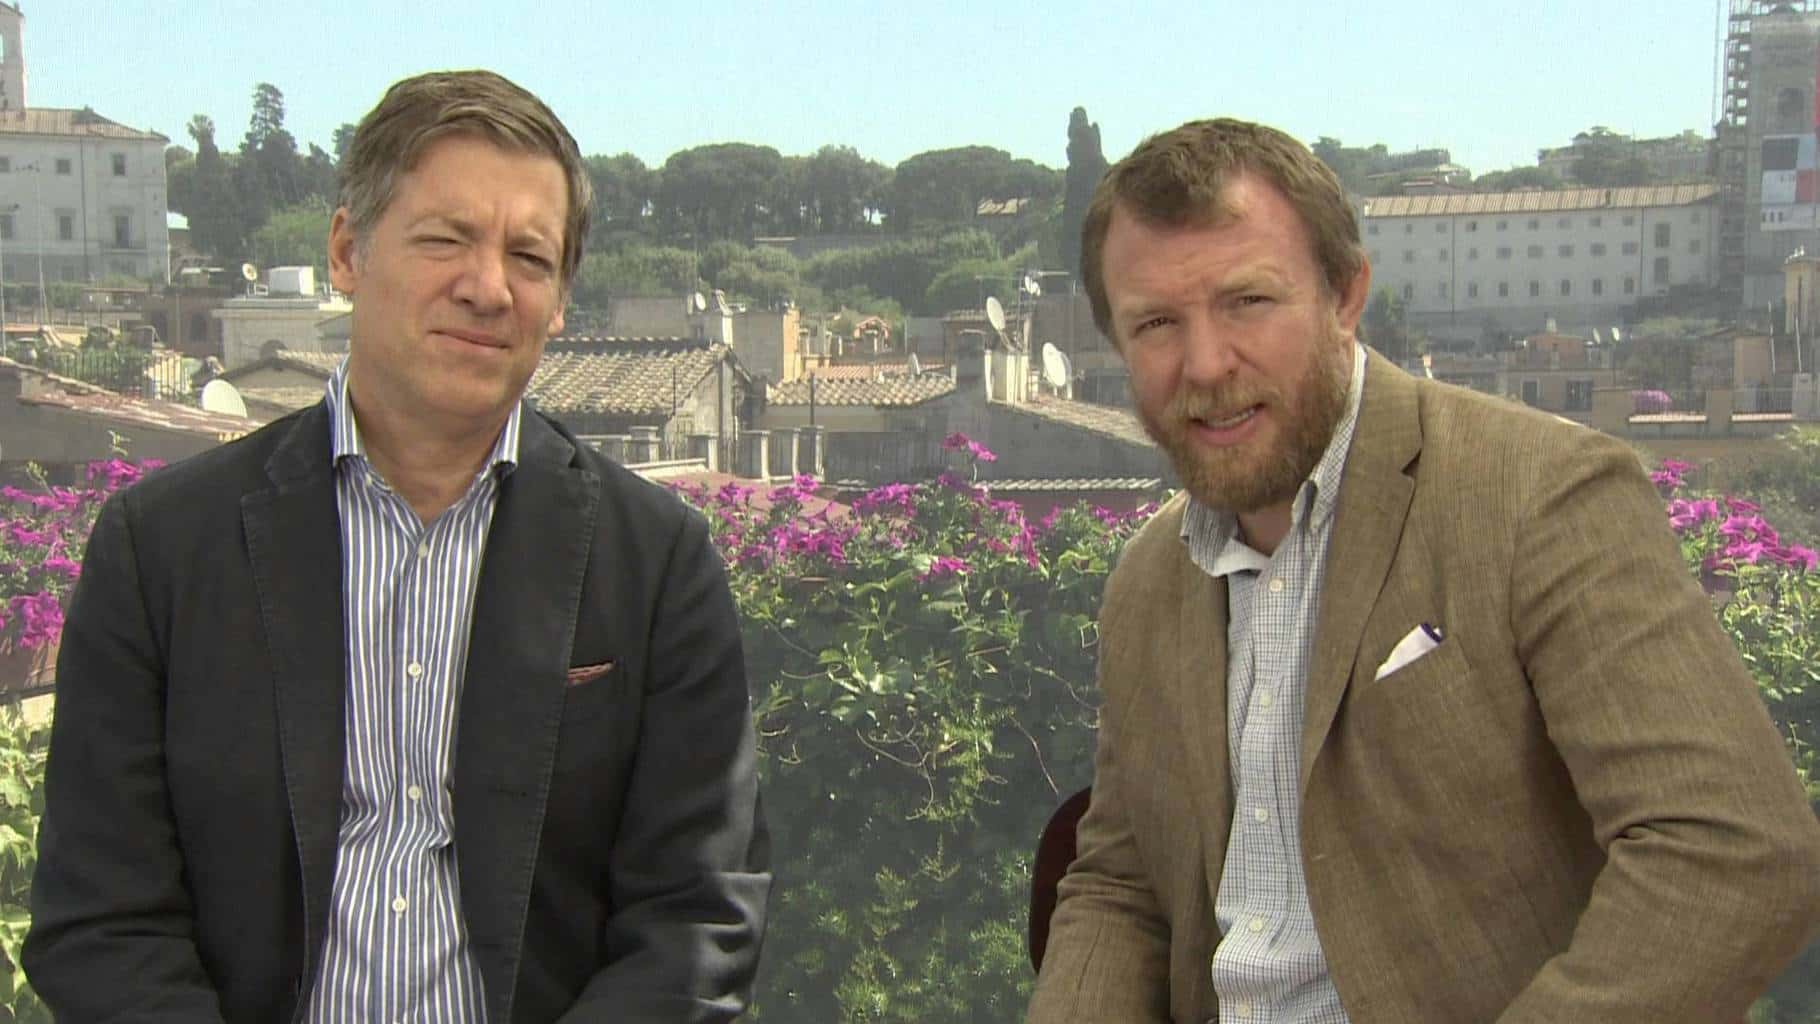 film reviews | movies | features | BRWC Guy Ritchie & Lionel Wigram Chat About Uncle